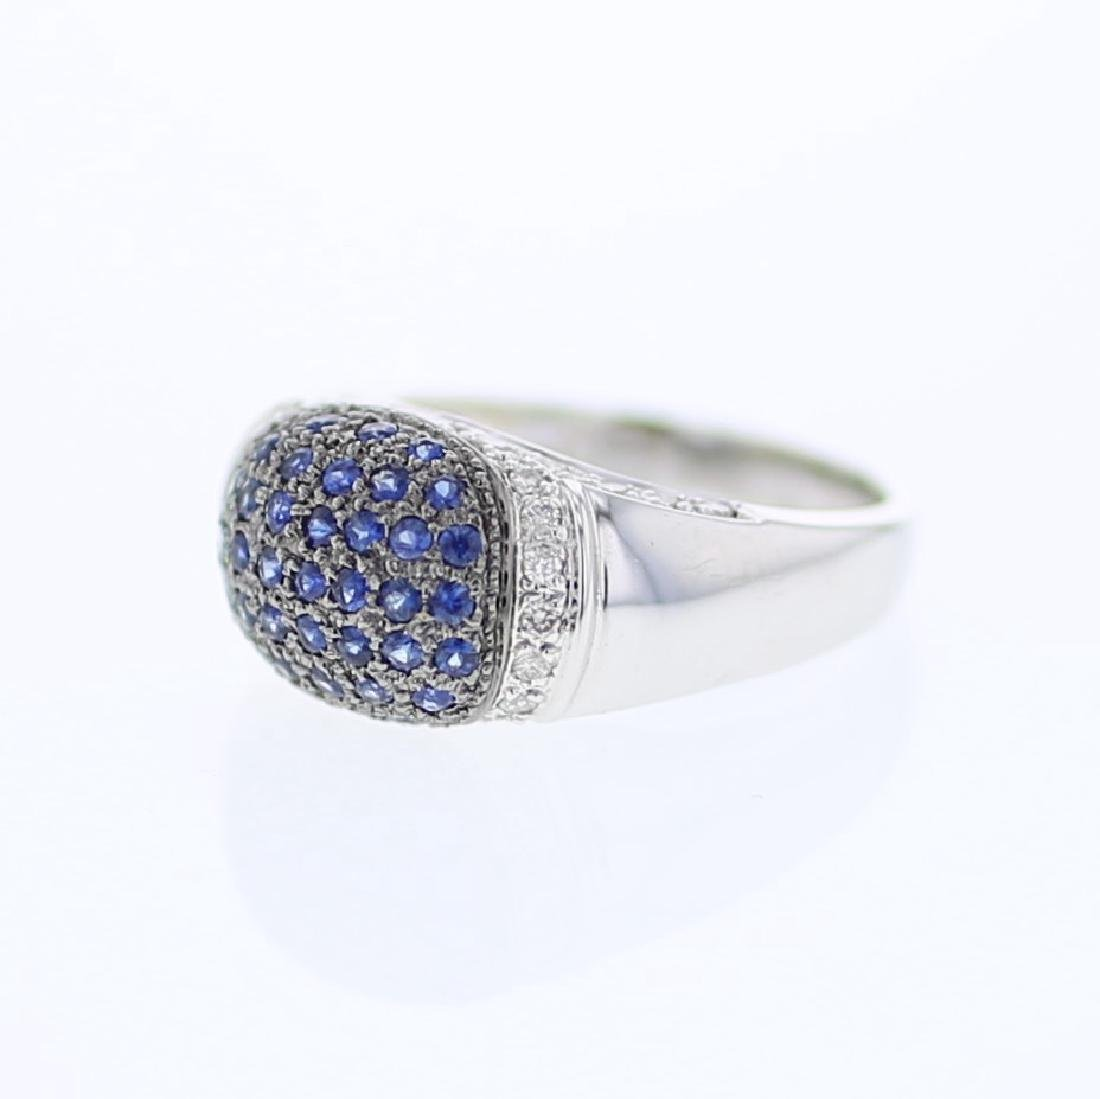 Dome-shaped Pave-set w/ Blue Sapphire Diamond Ring in